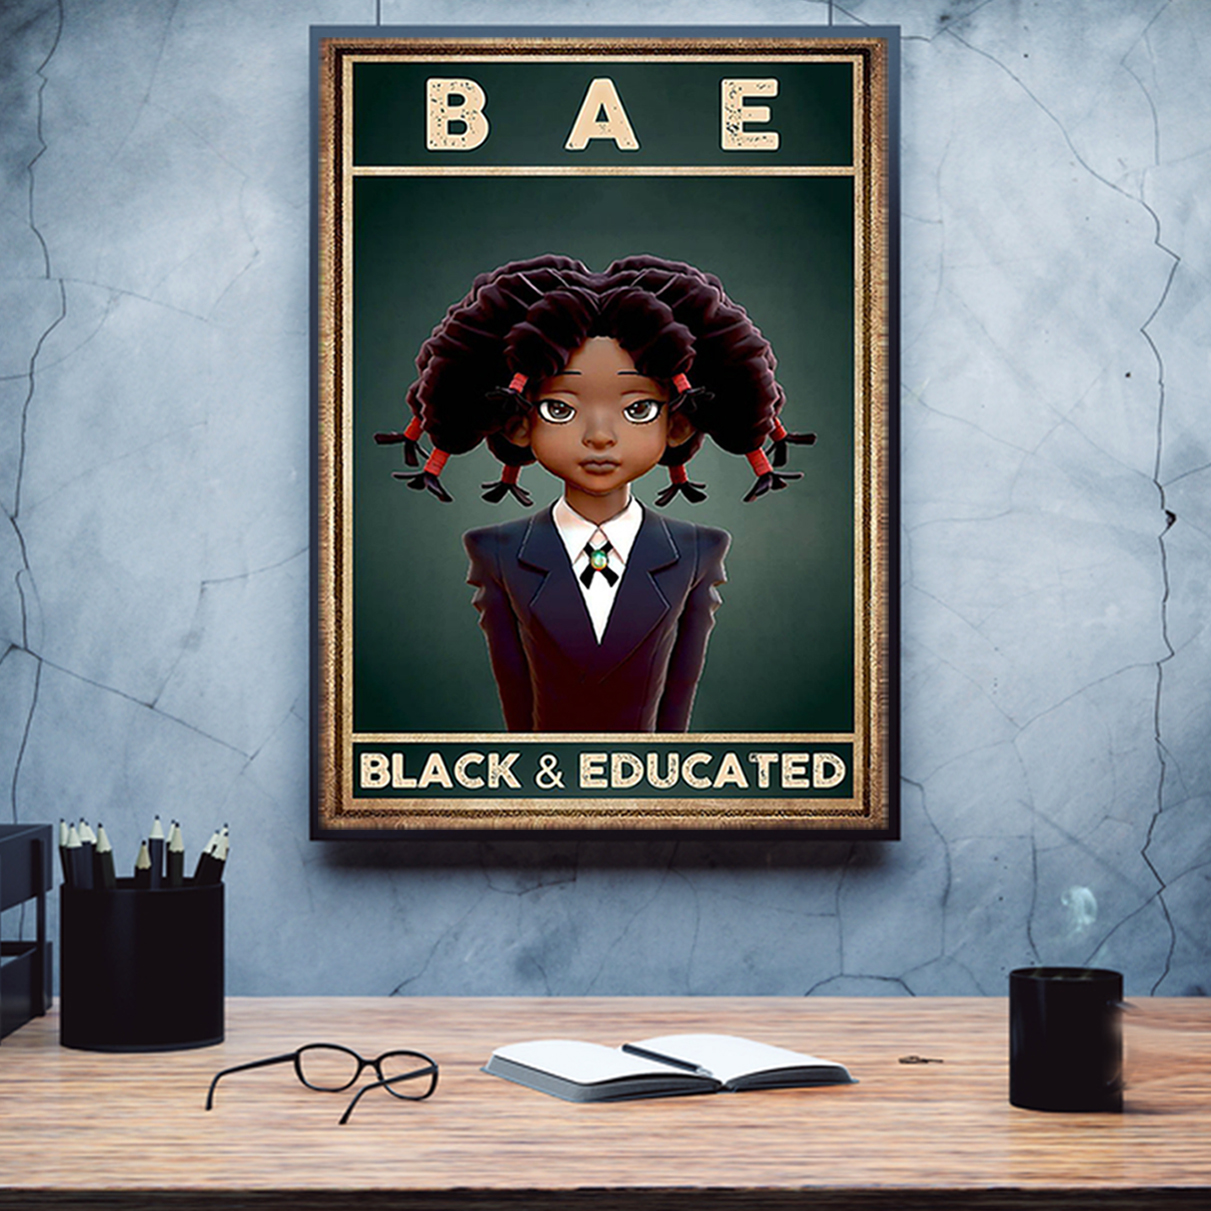 BAE black and educated poster A2